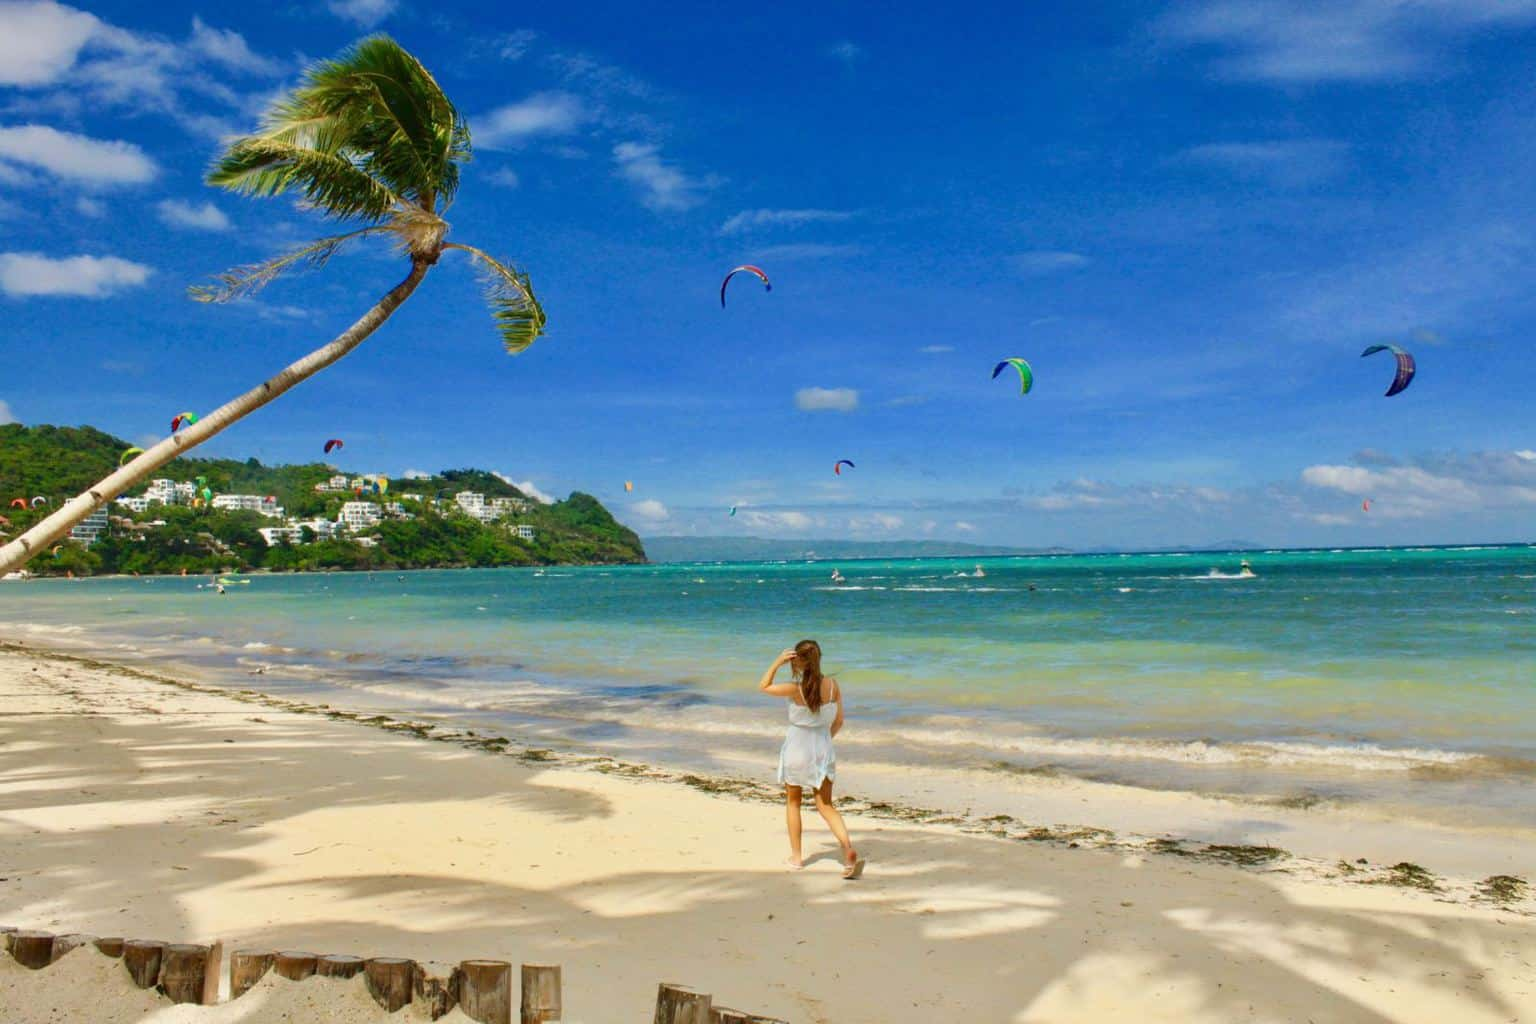 Kitesurfing Boracay Philippines The Ultimate Guide